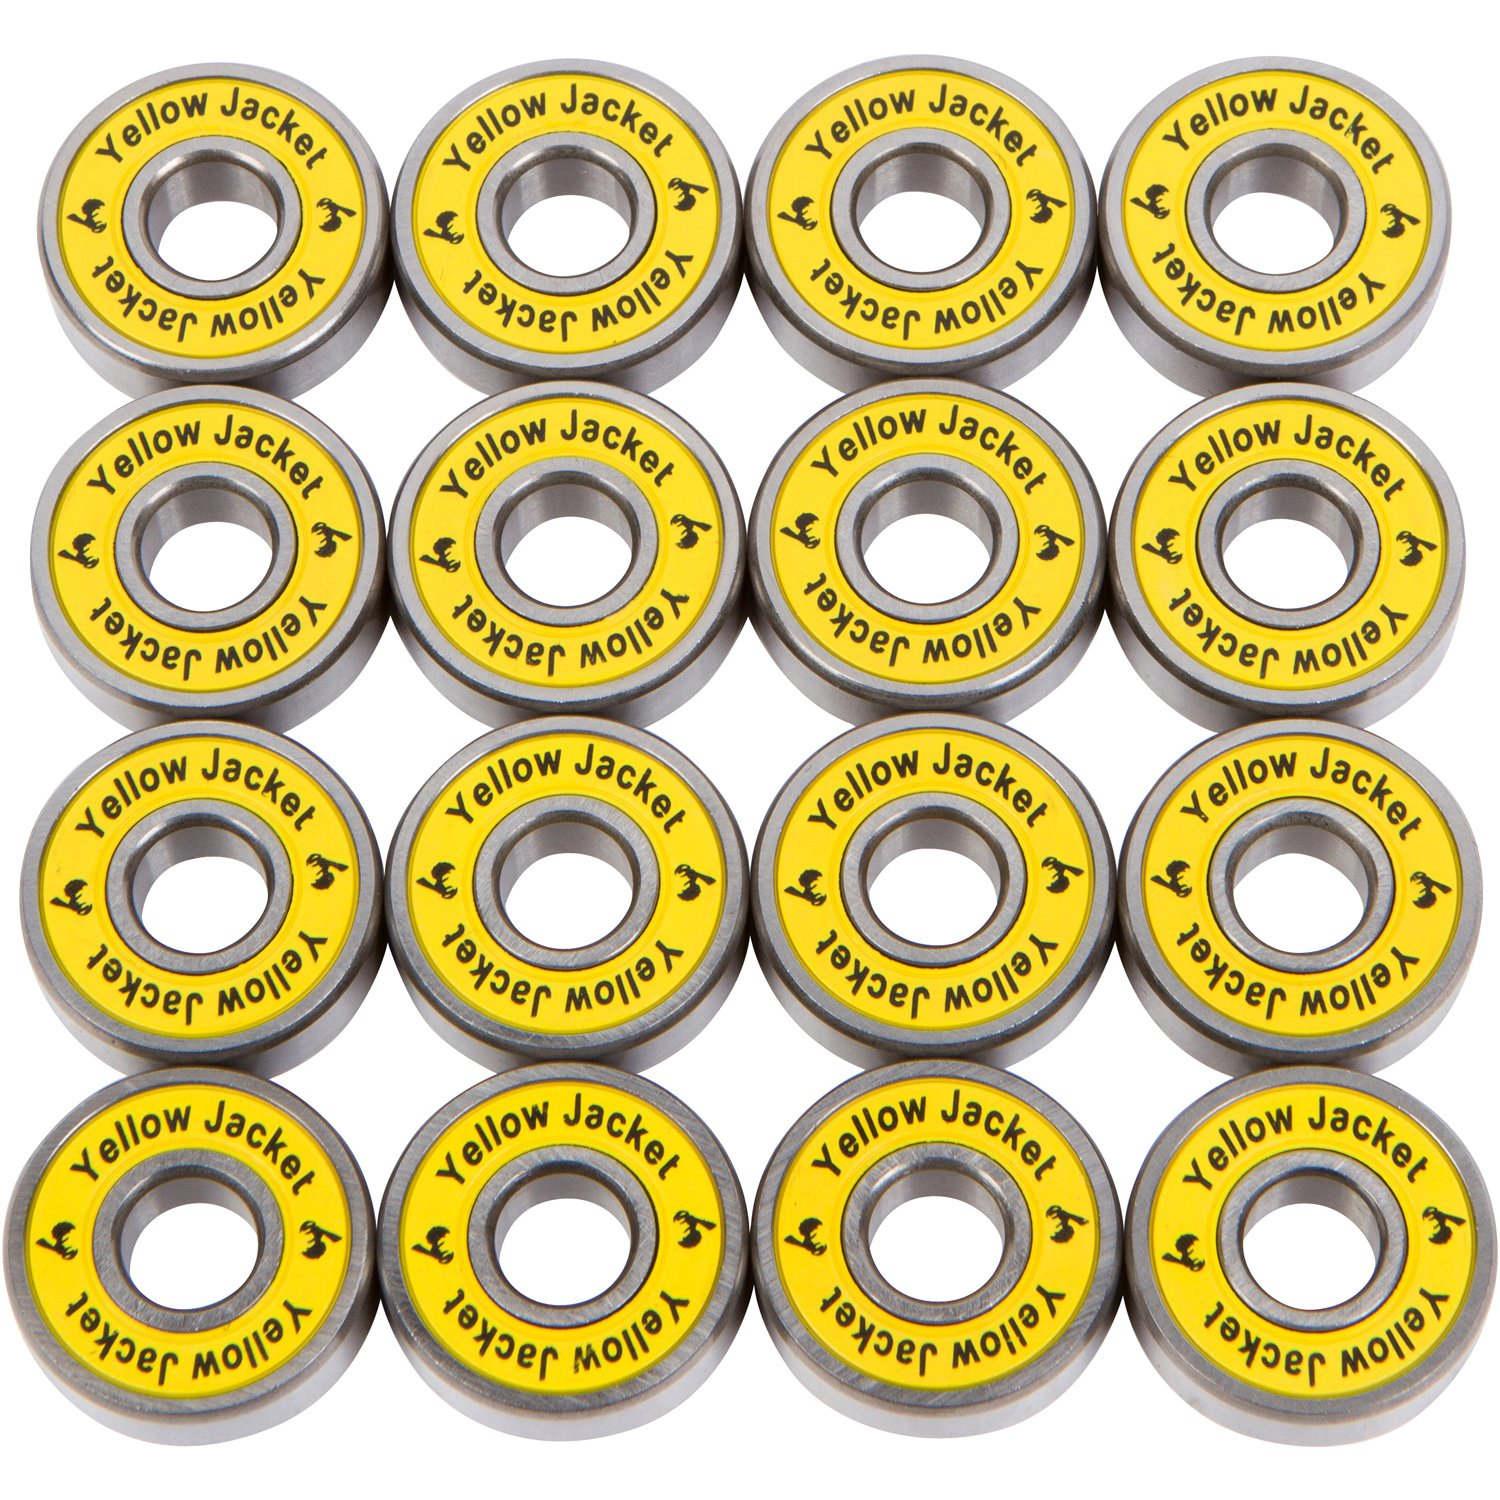 Yellow Jacket Premium Inline Skate Bearings, Roller Skate Bearings, 608, ABEC 11, Yellow Jacket